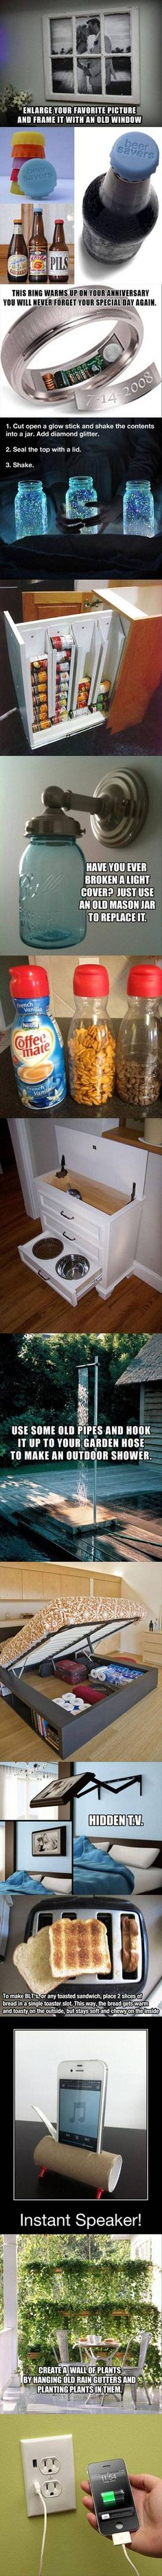 These are some cool and creative ideas for your home.